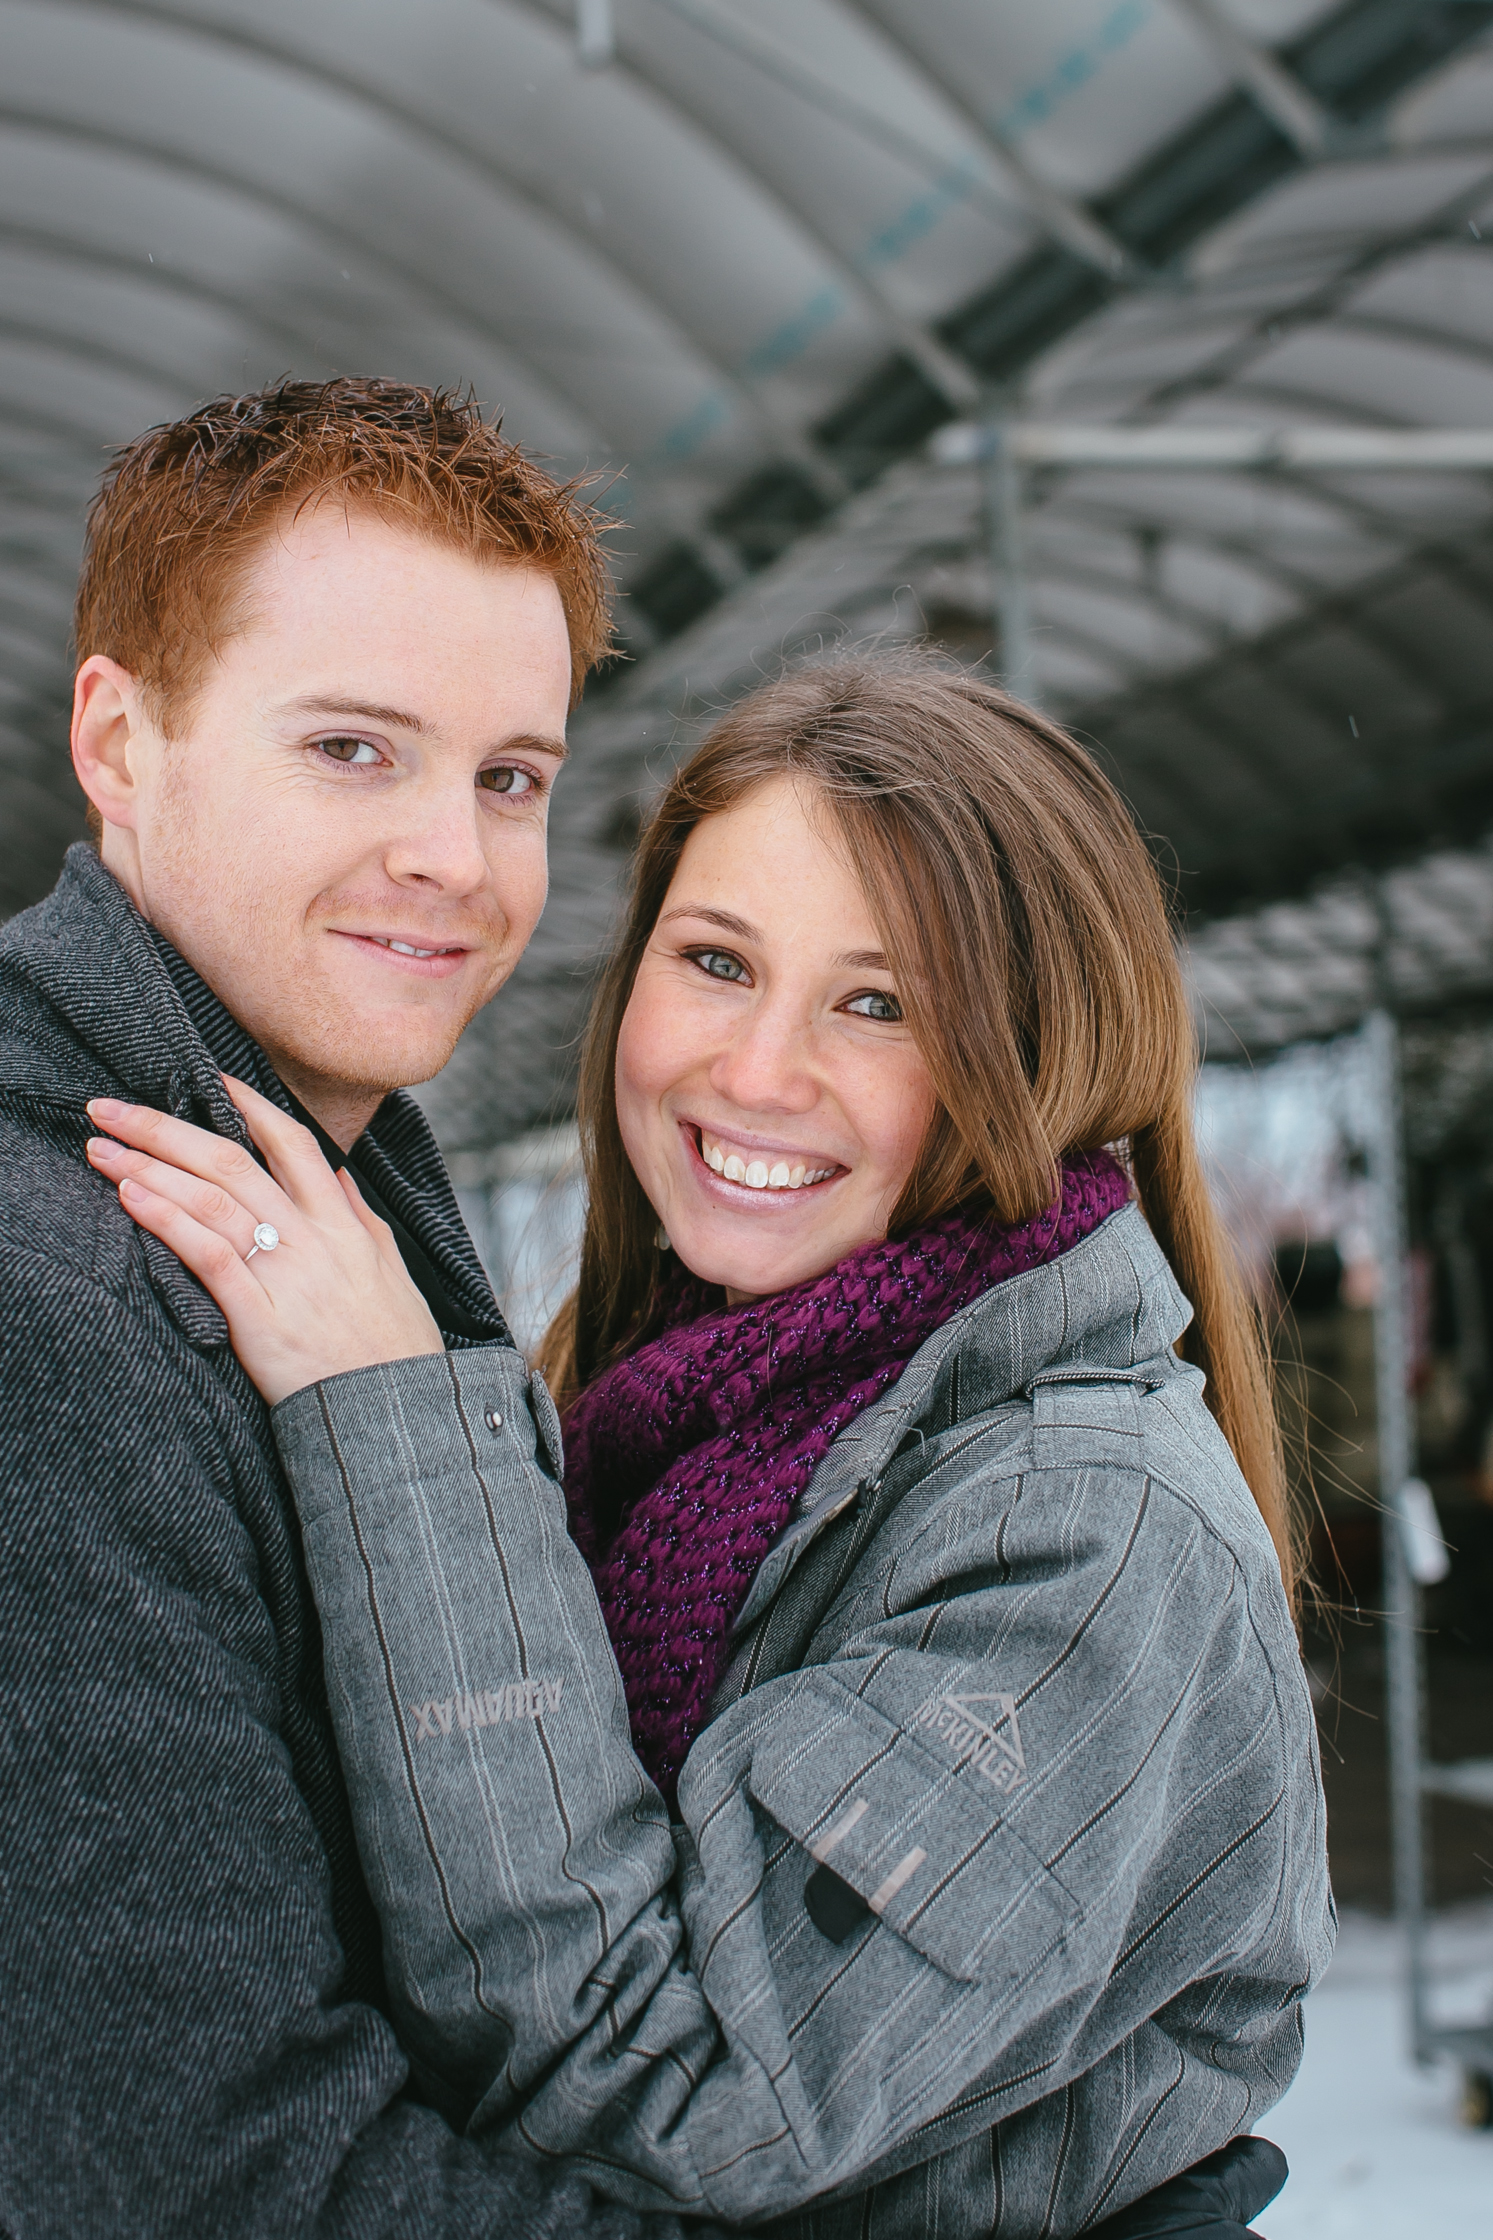 Image 30 of Cutest Christmas Proposal Ever | Brittany  and Tim